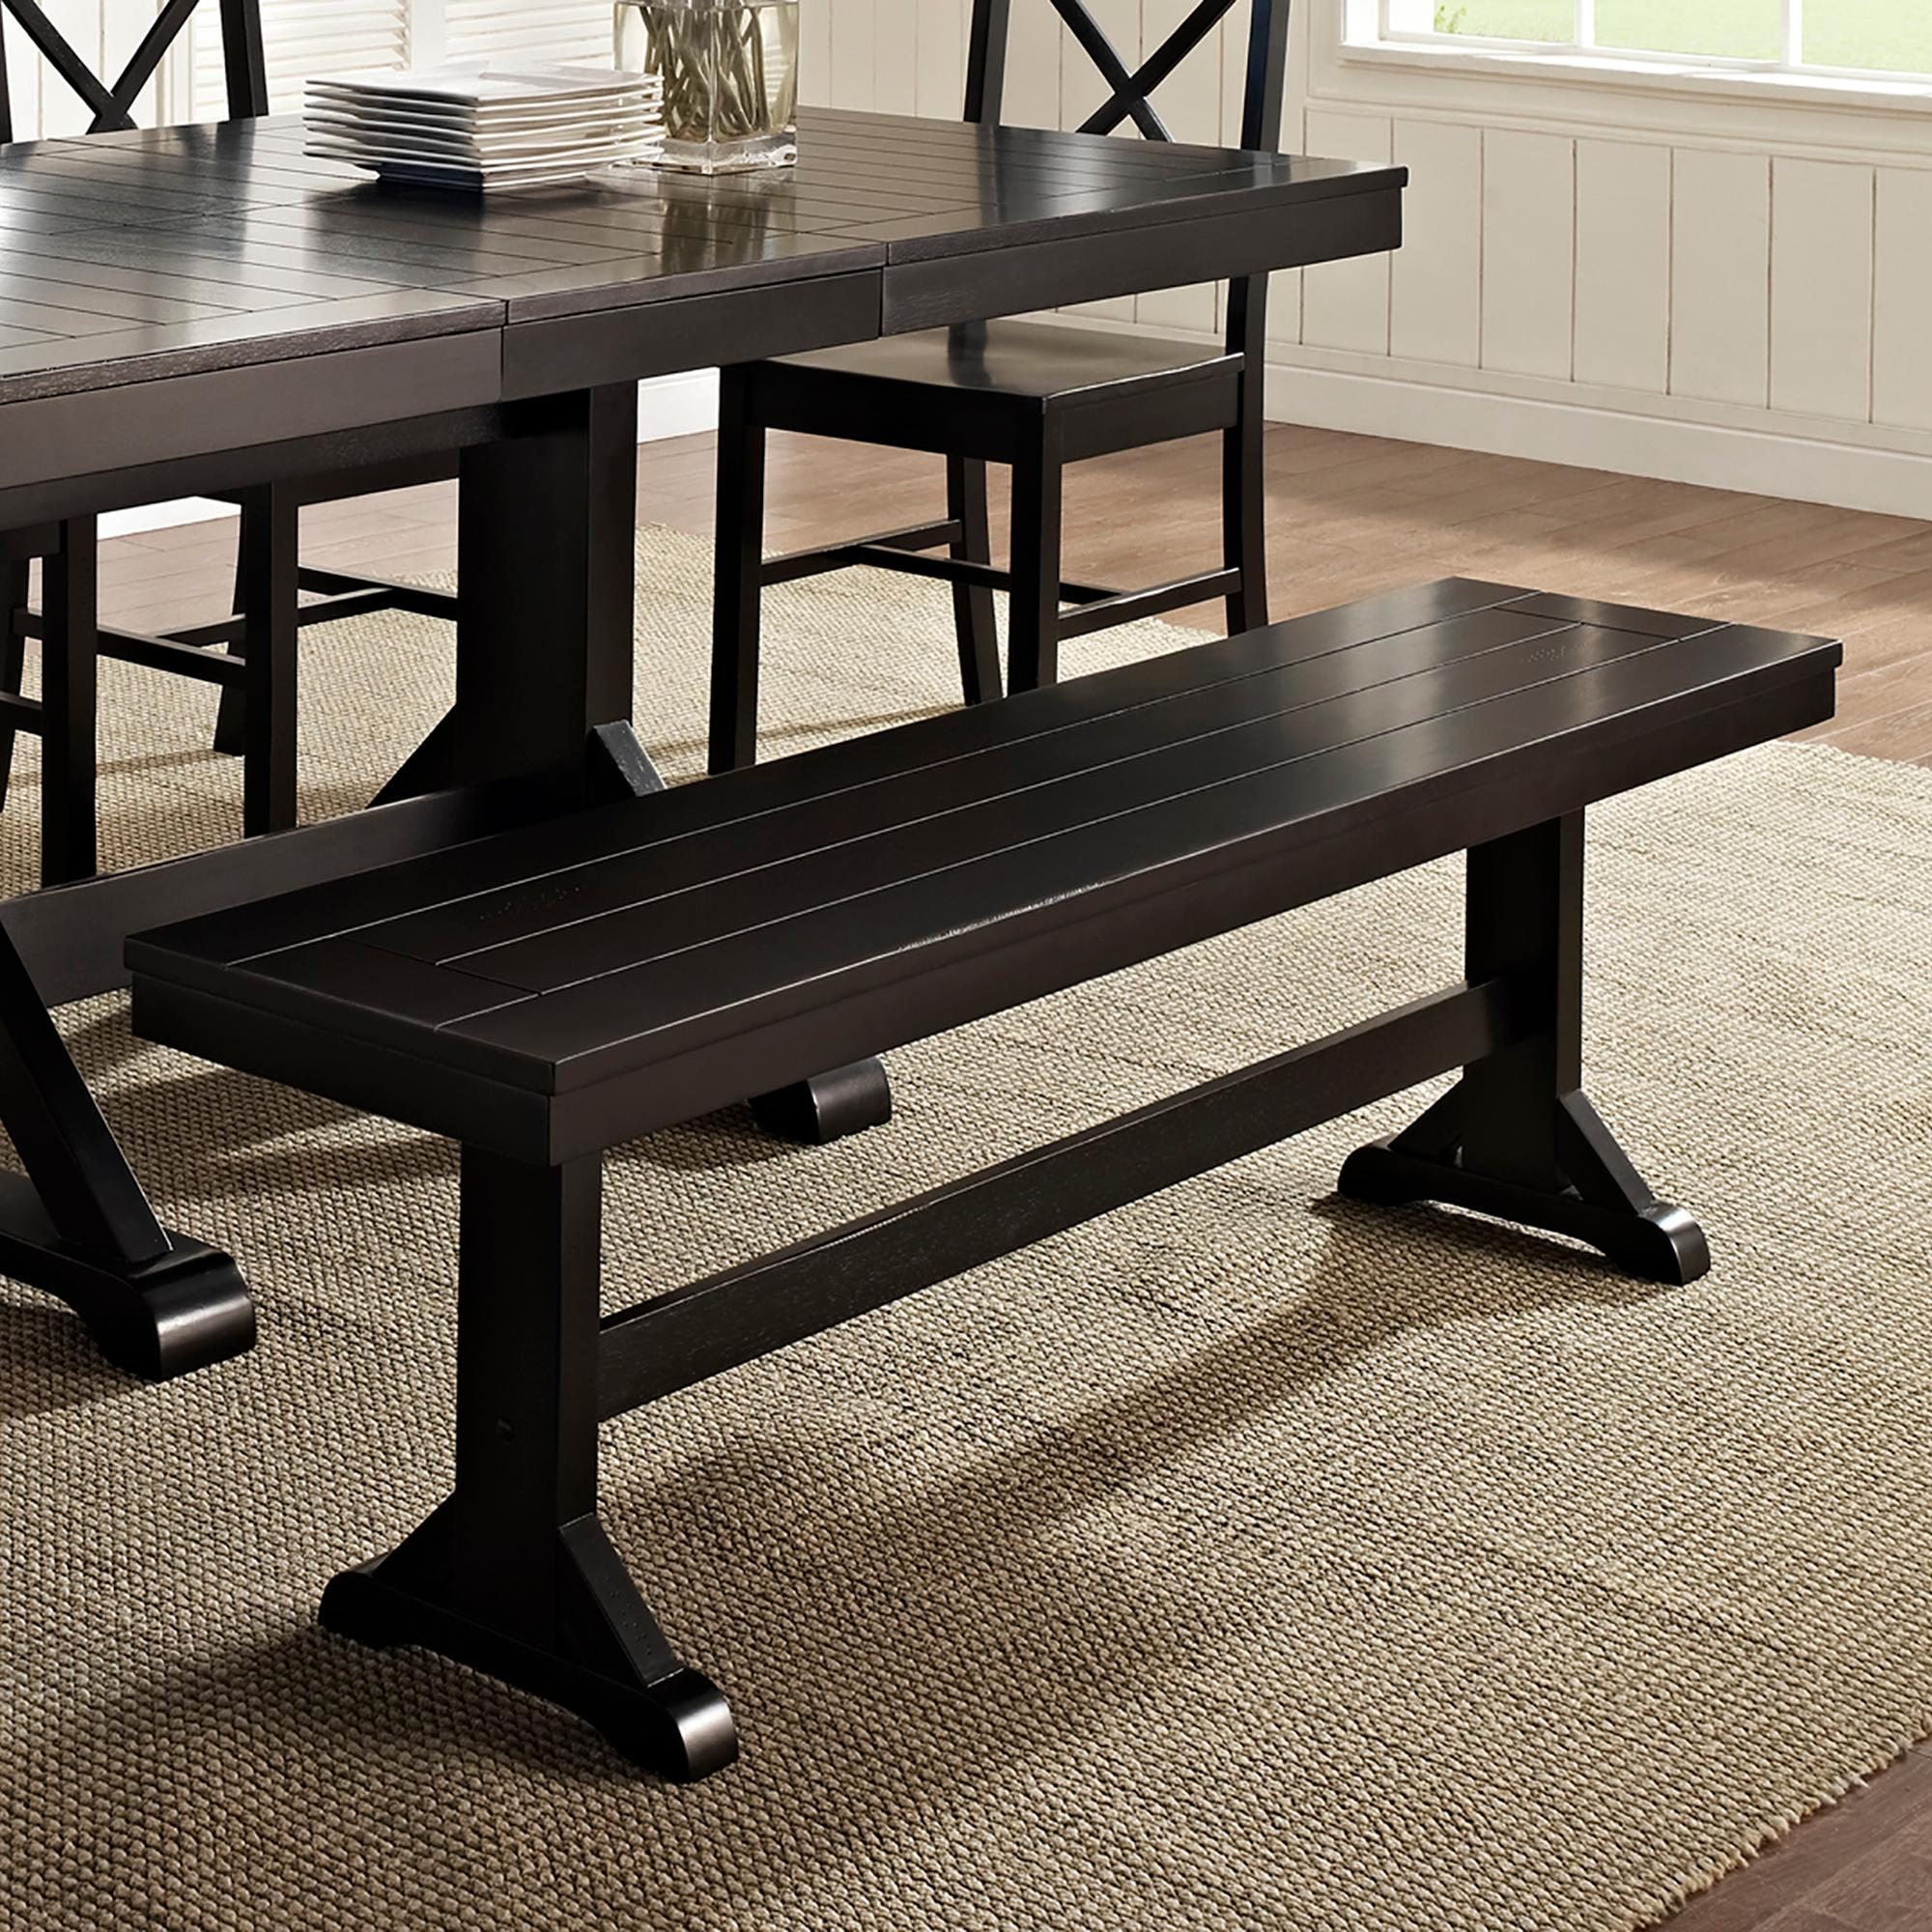 Dining Table With A Bench: WE Furniture Solid Wood Black Dining Bench